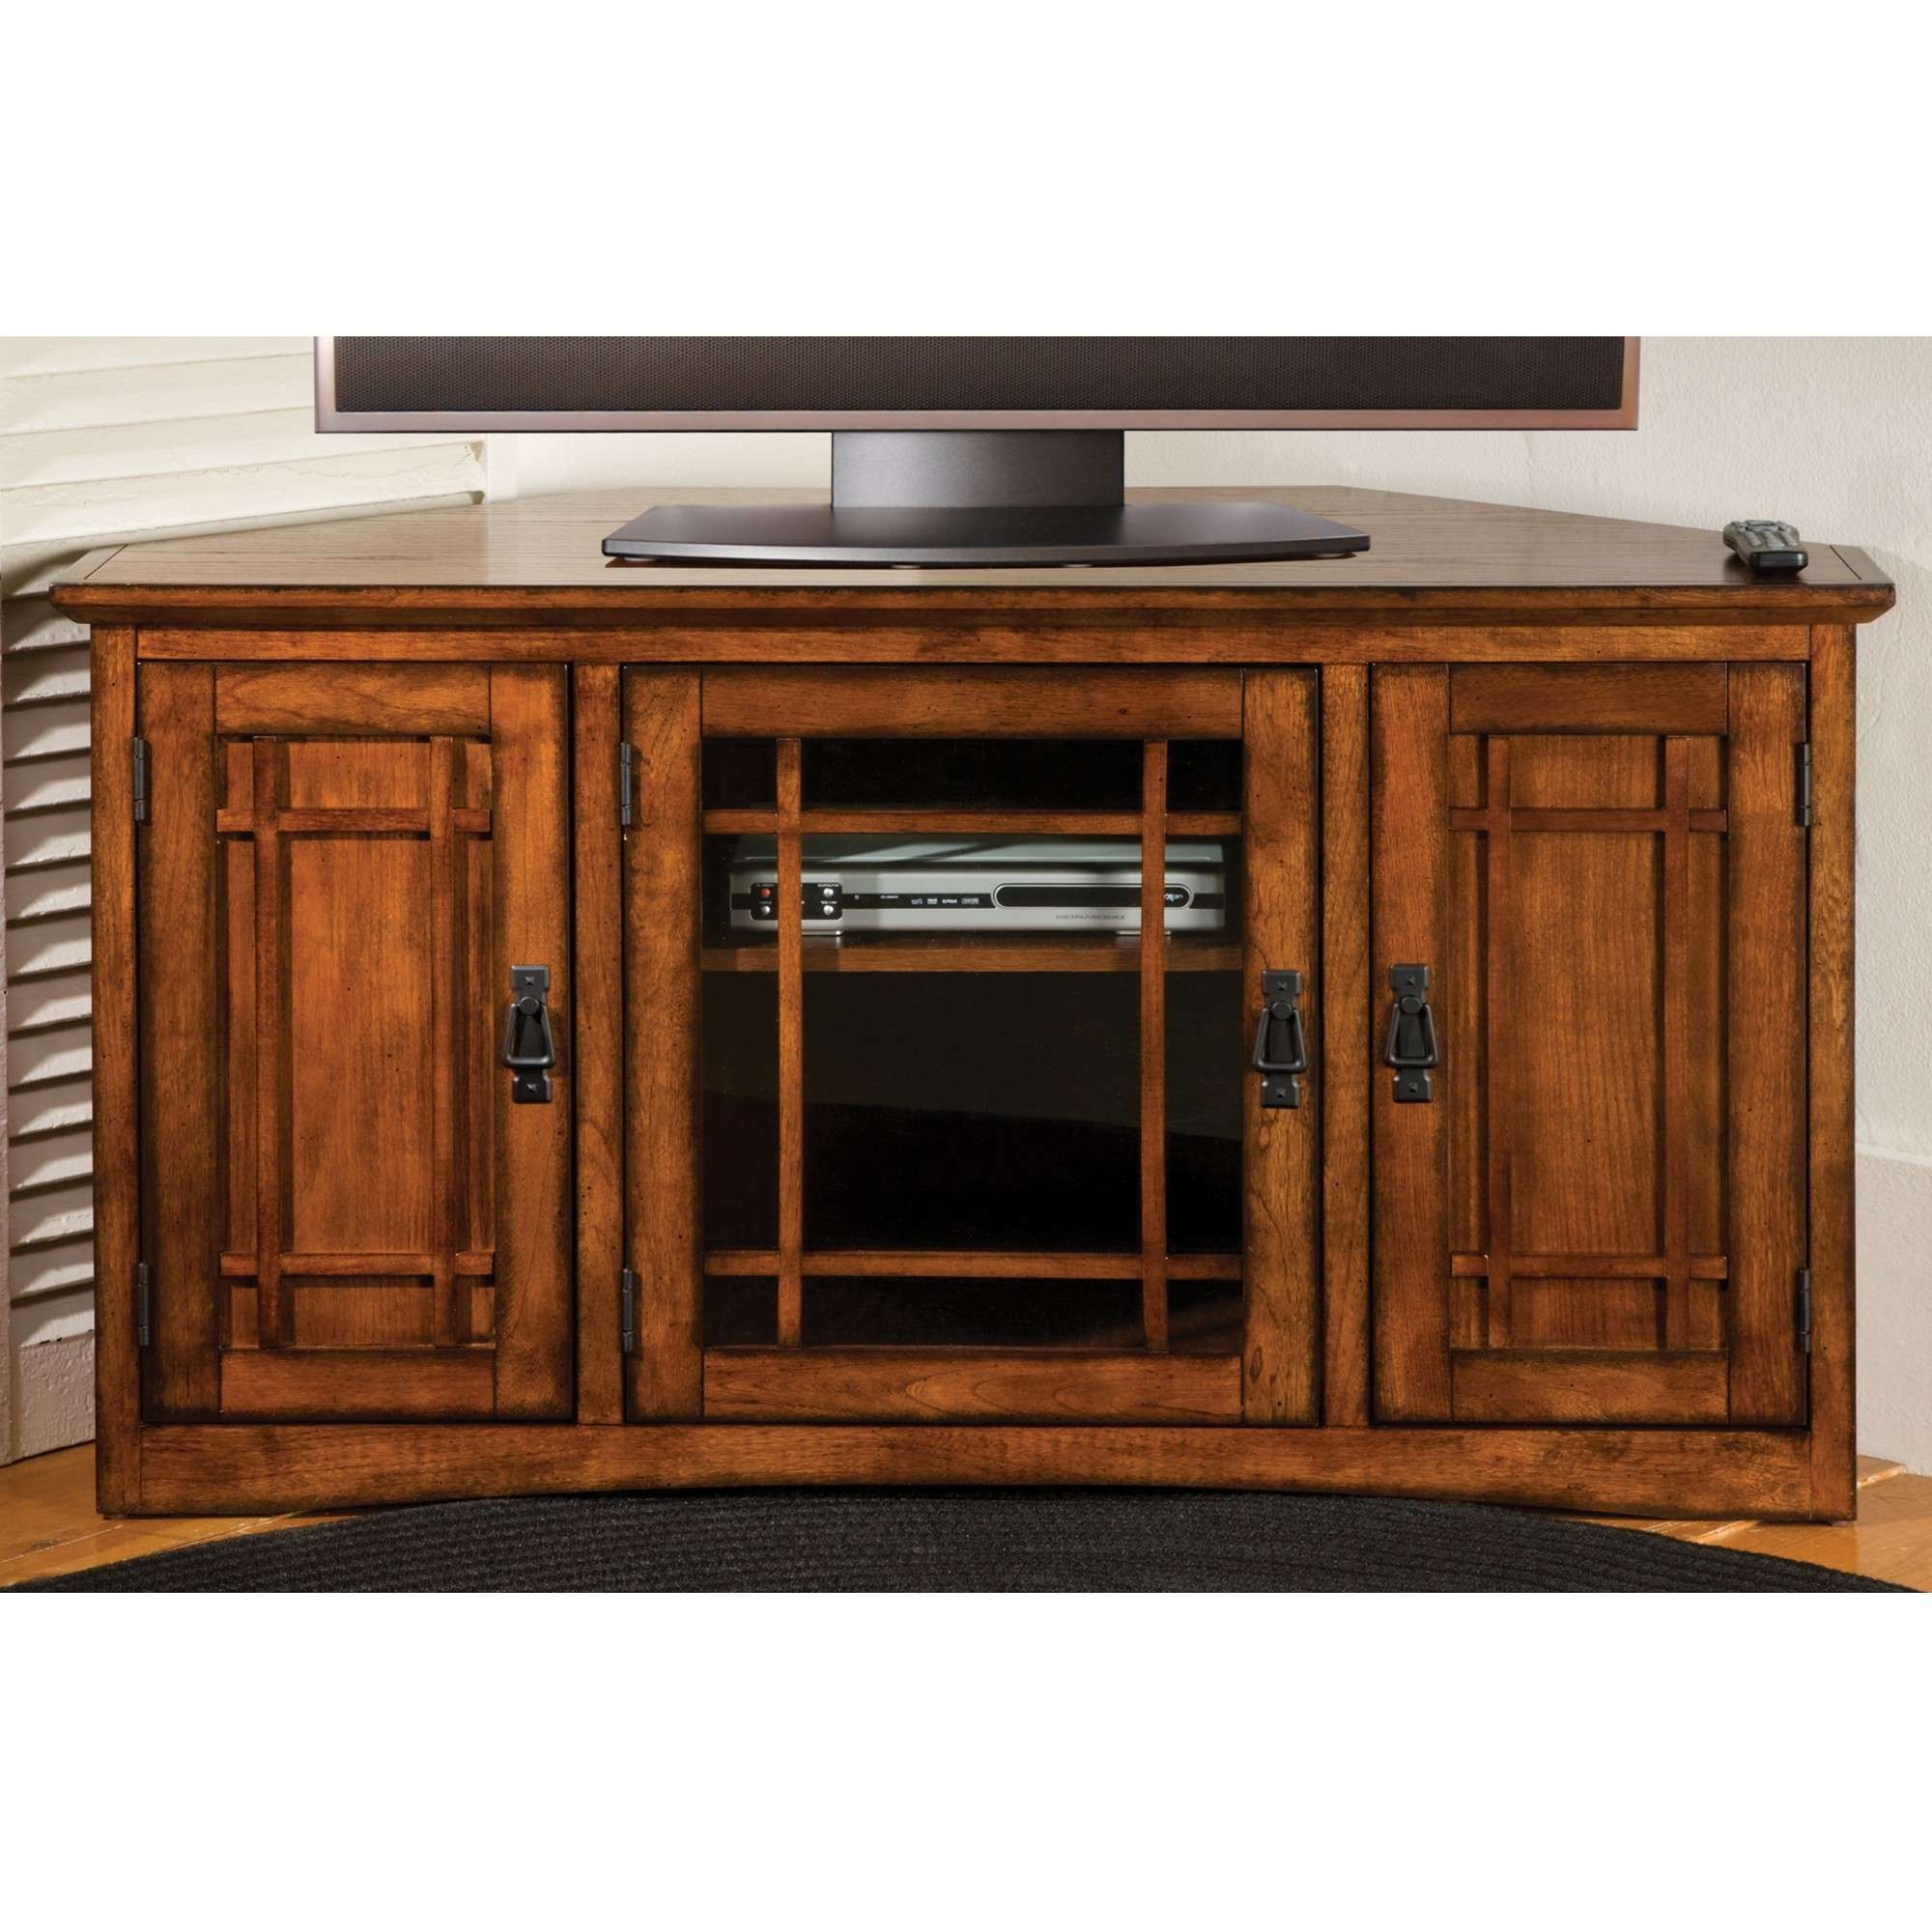 Mission Corner Tv Cabinet | Sturbridge Yankee Workshop Within Black Corner Tv Cabinets With Glass Doors (View 9 of 20)